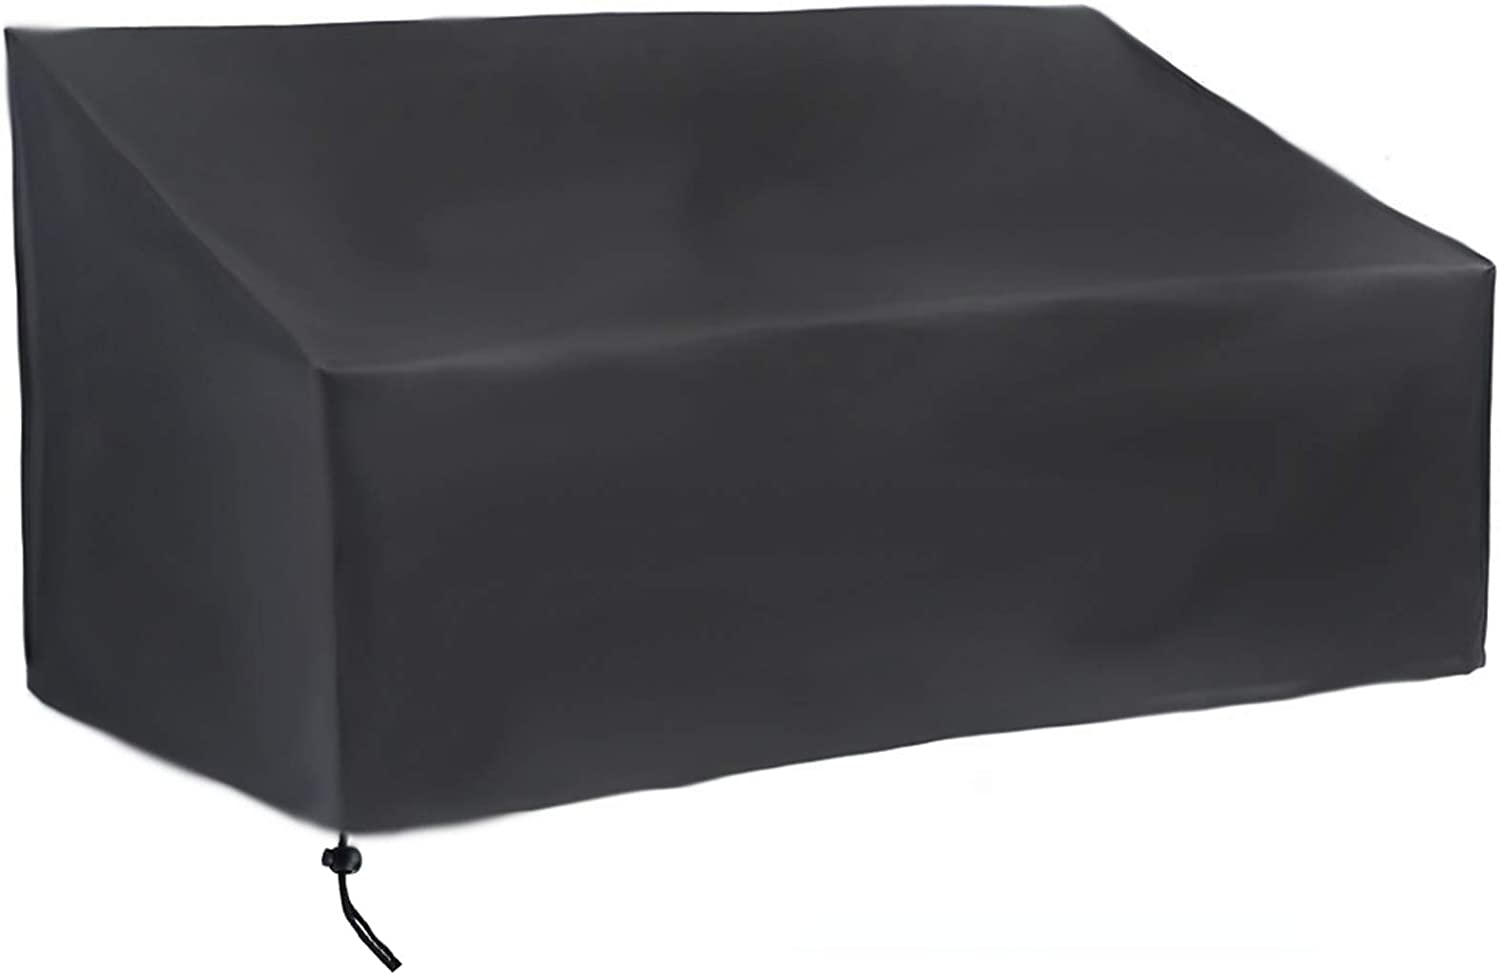 Aidetech Patio Seat Cover, Outdoor 3-Seater Loveseat Bench Cover, Durable and Waterproof Patio Furniture Sofa Cover